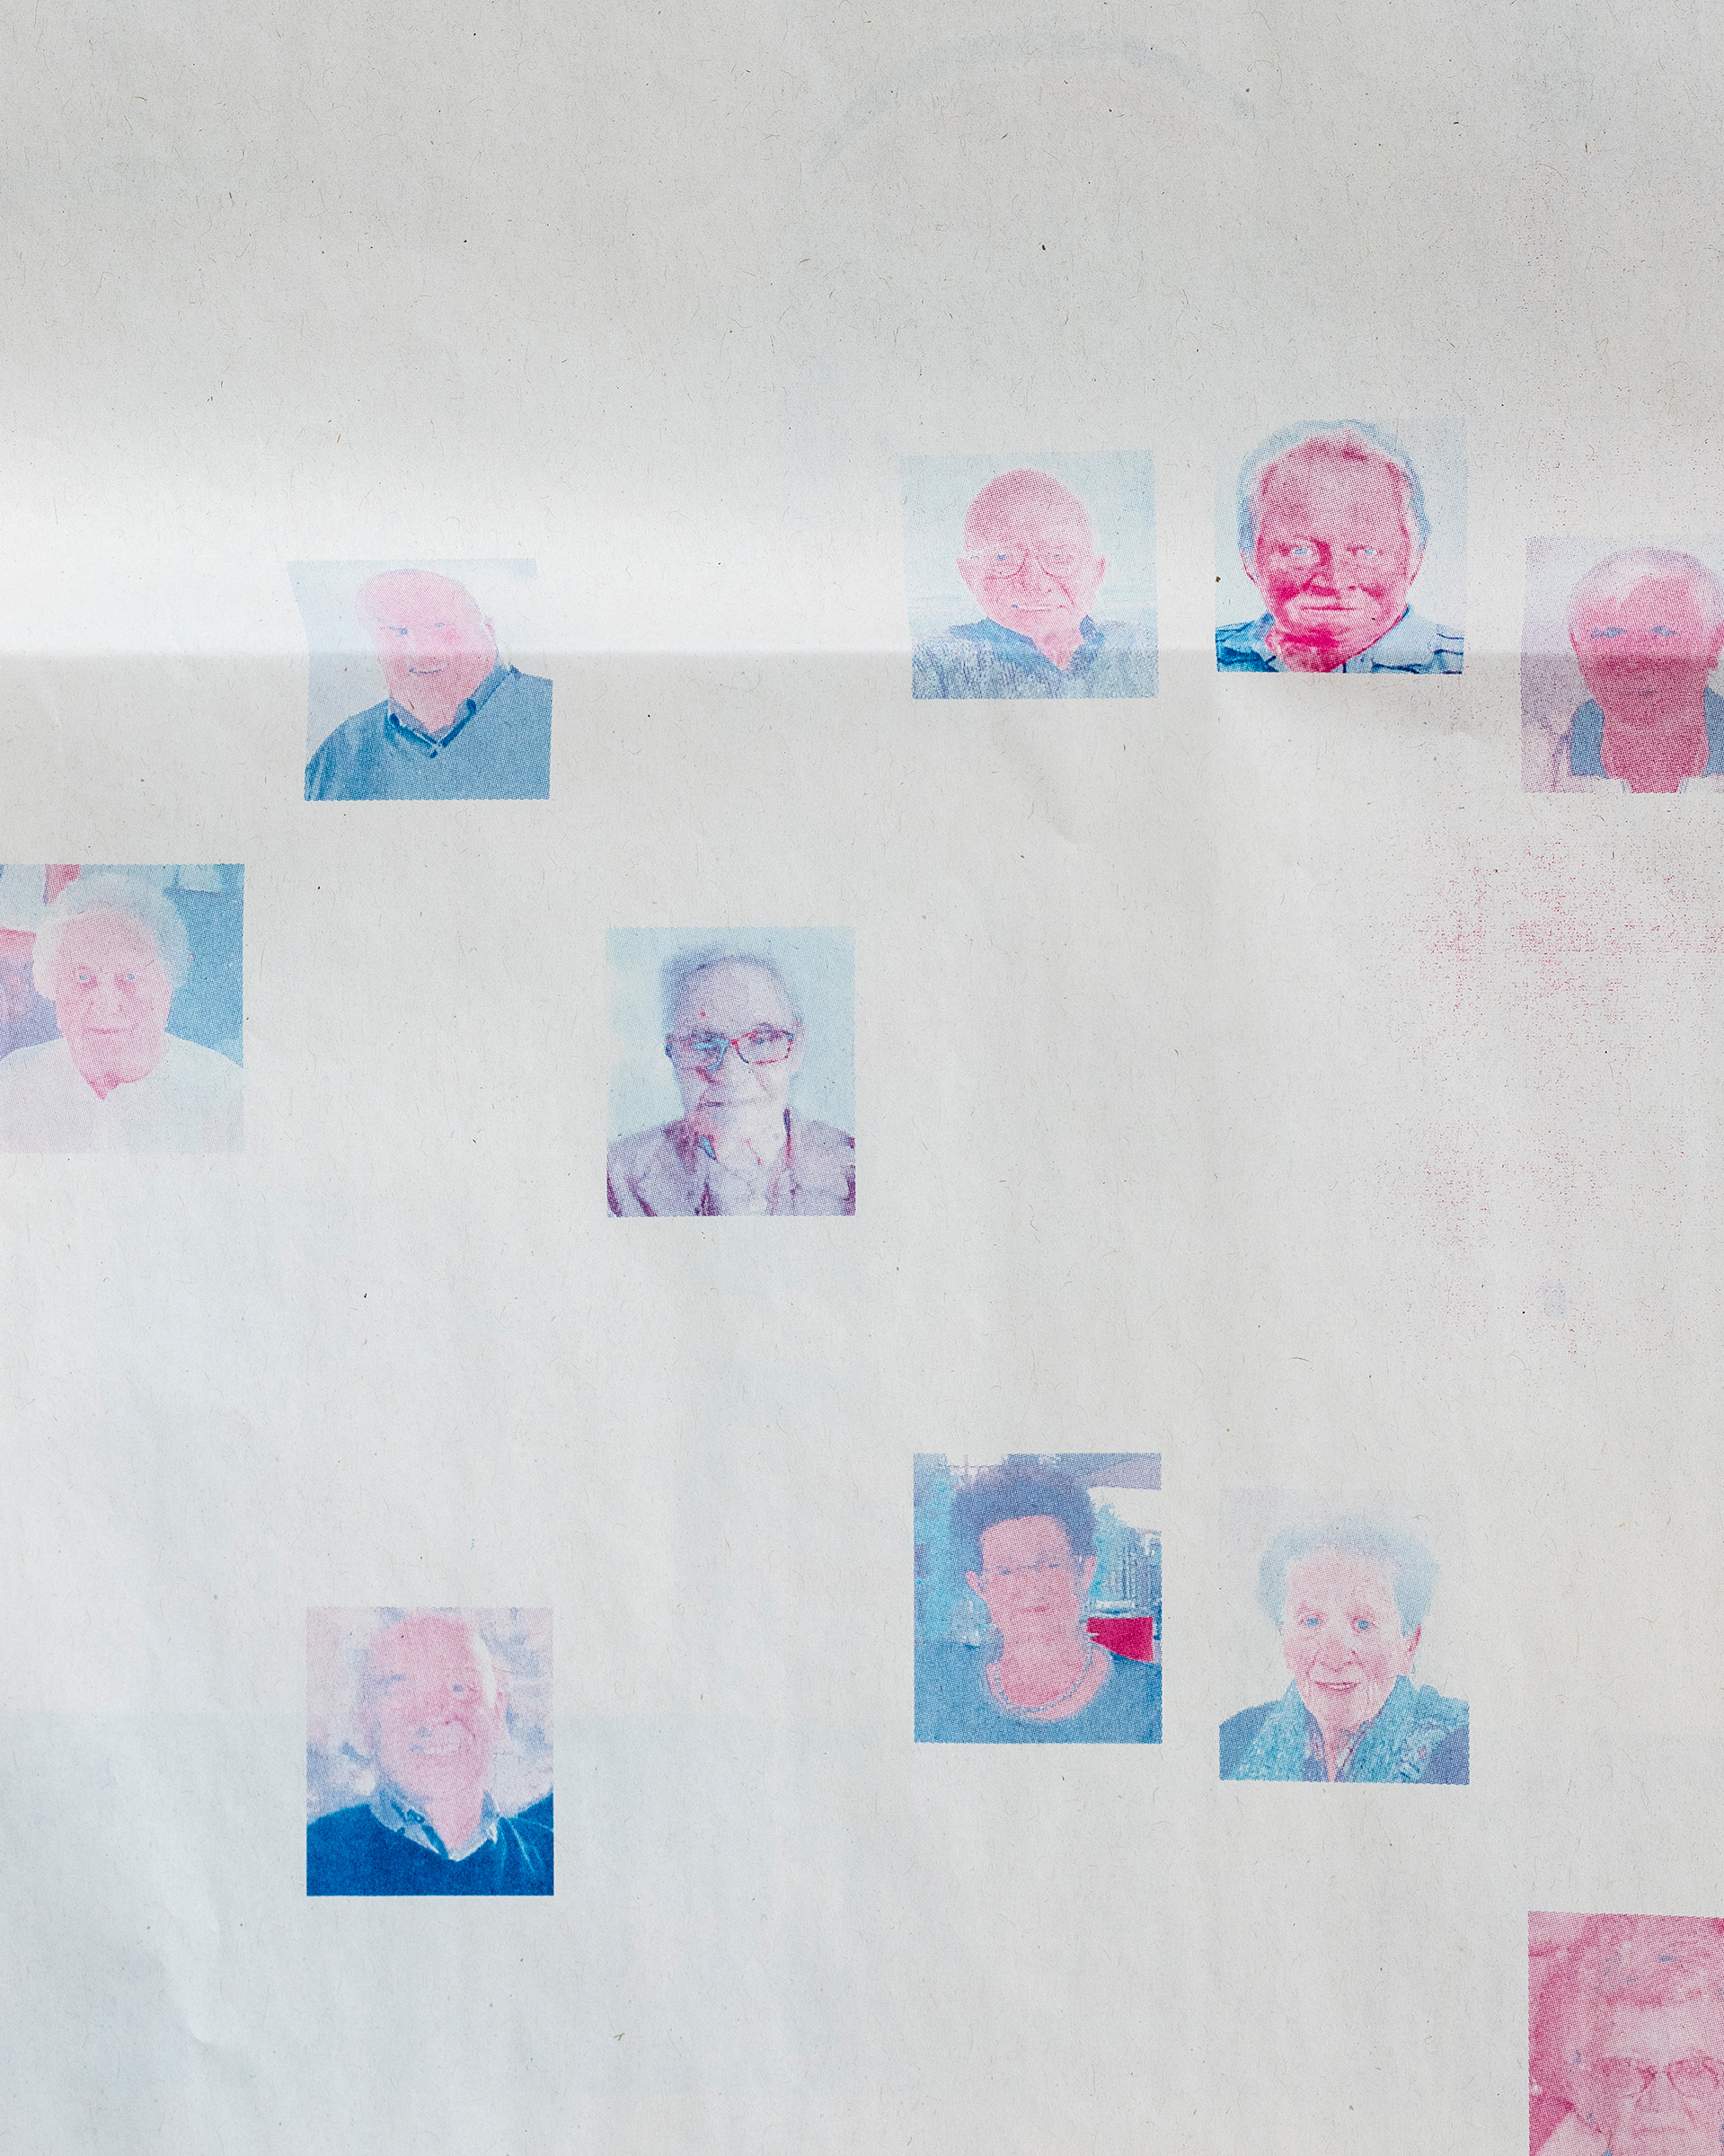 Discolored obituary portraits at the printing plant of L'Eco diBergamo in Erbusco; the newspaper dedicated more pages to accommodate the death toll.